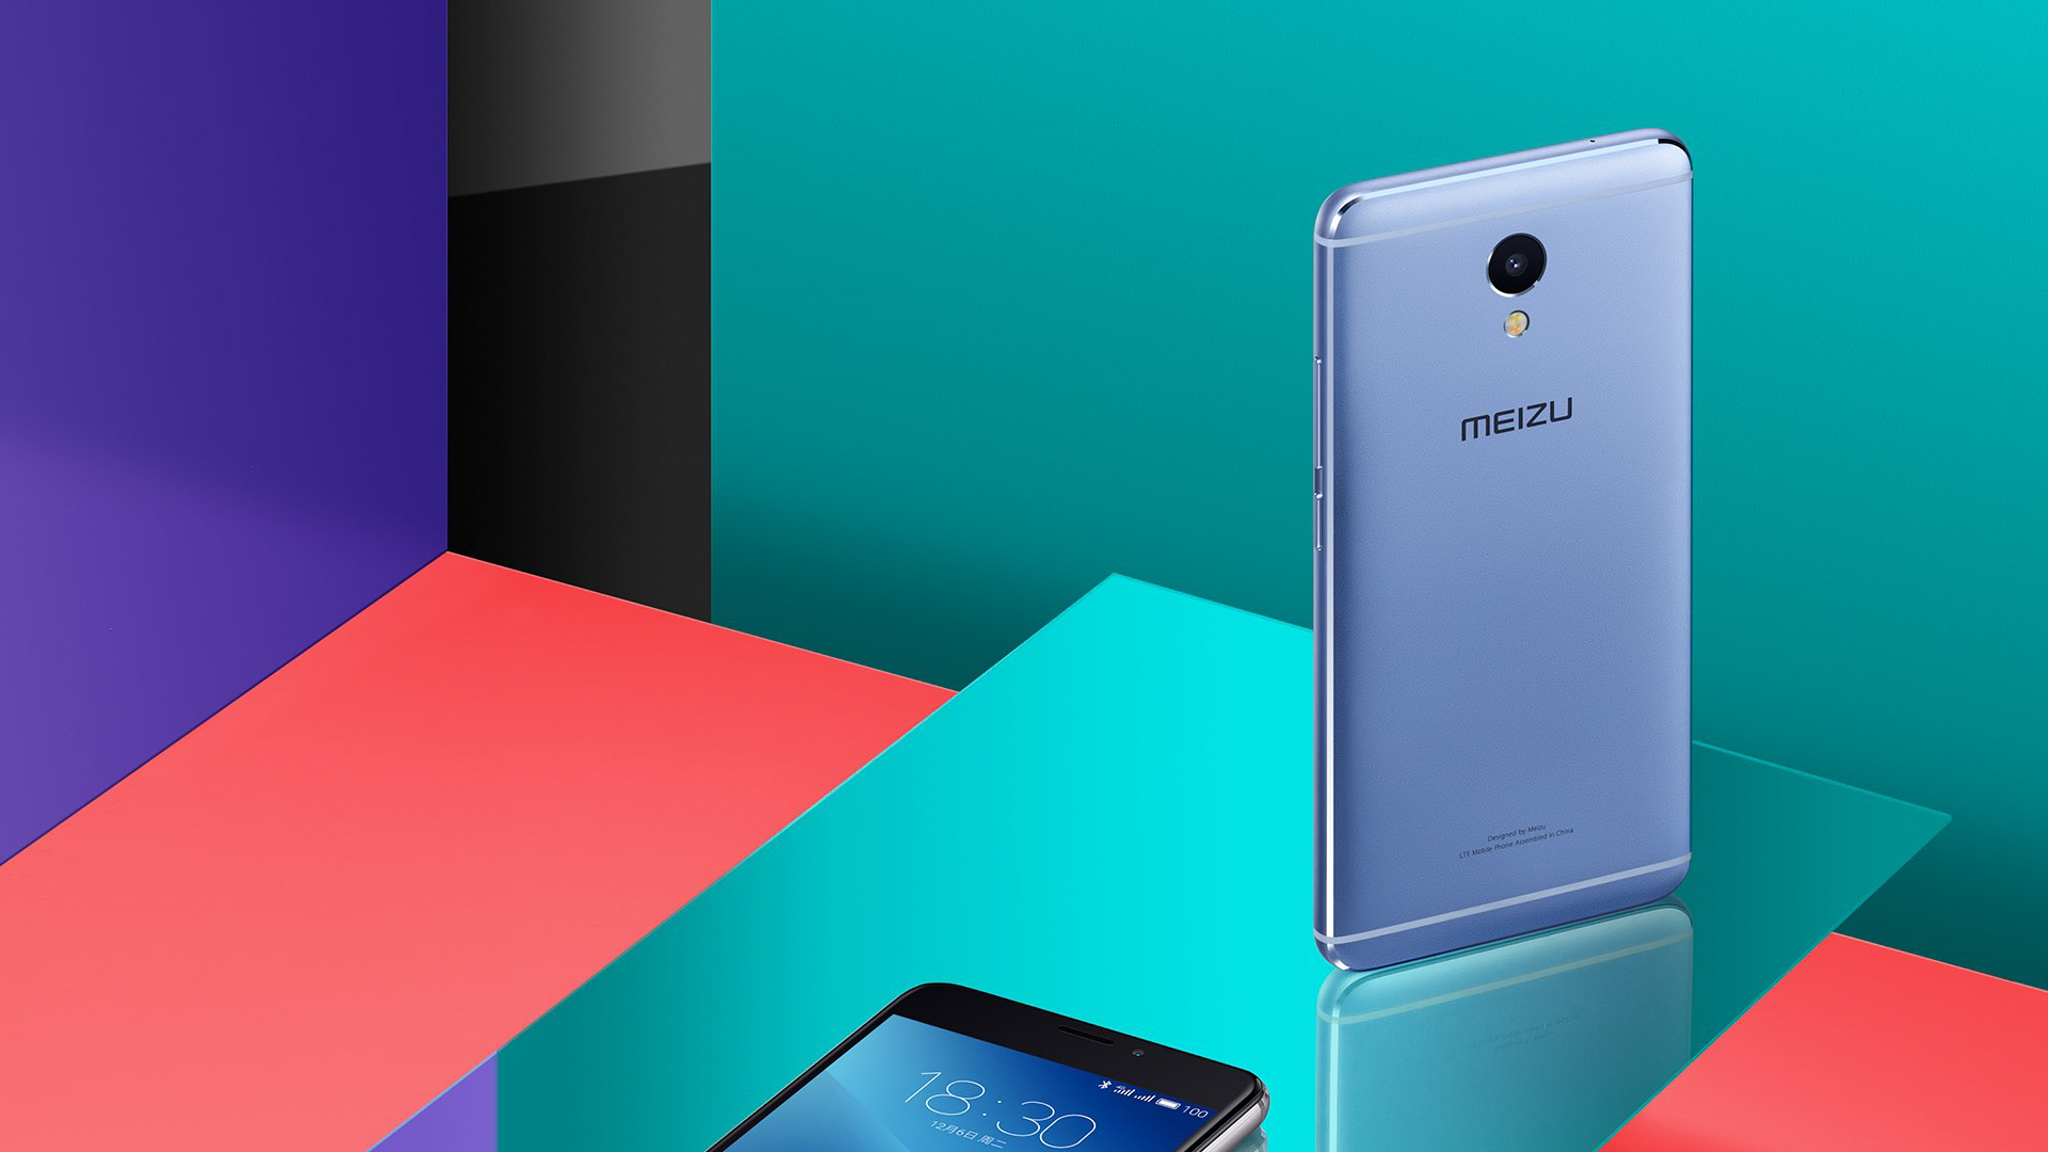 Meizu-M5-Note-official-images